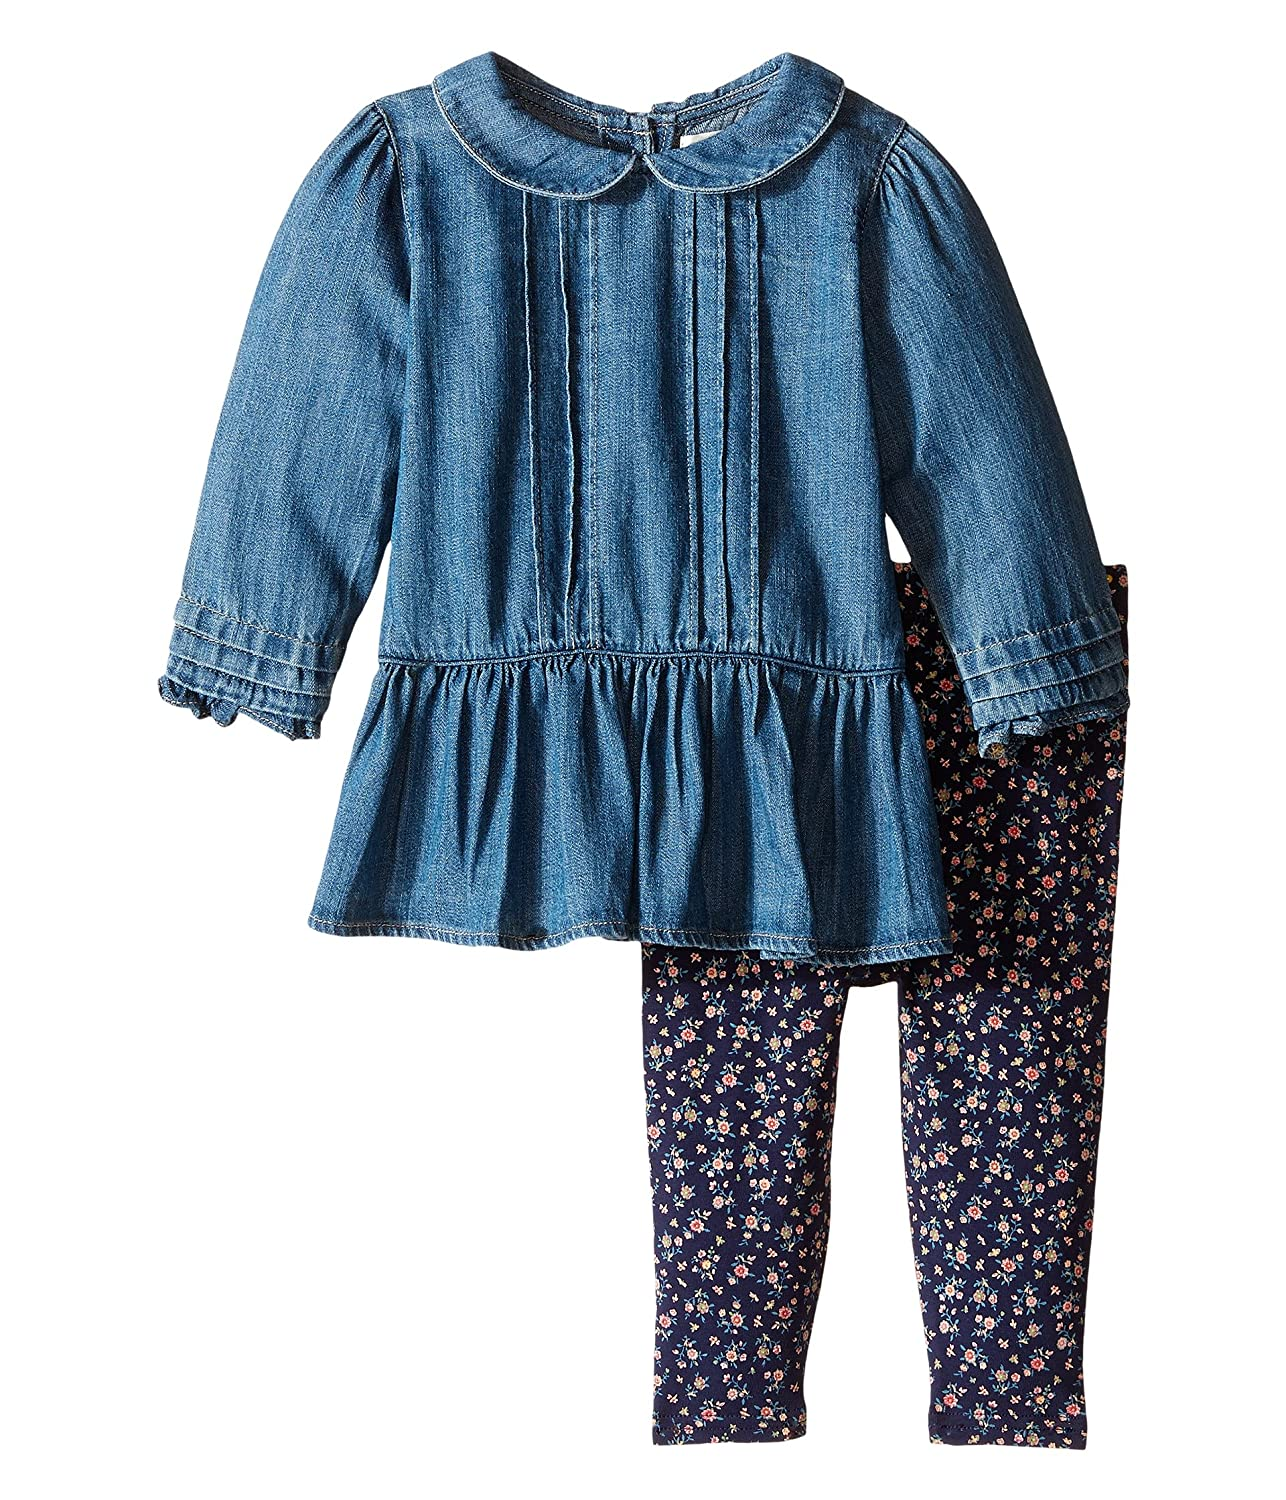 9f61a7473 Amazon.com: Ralph Lauren Polo Baby Girls Denim Shirt & Floral Leggings Set (12  M): Baby